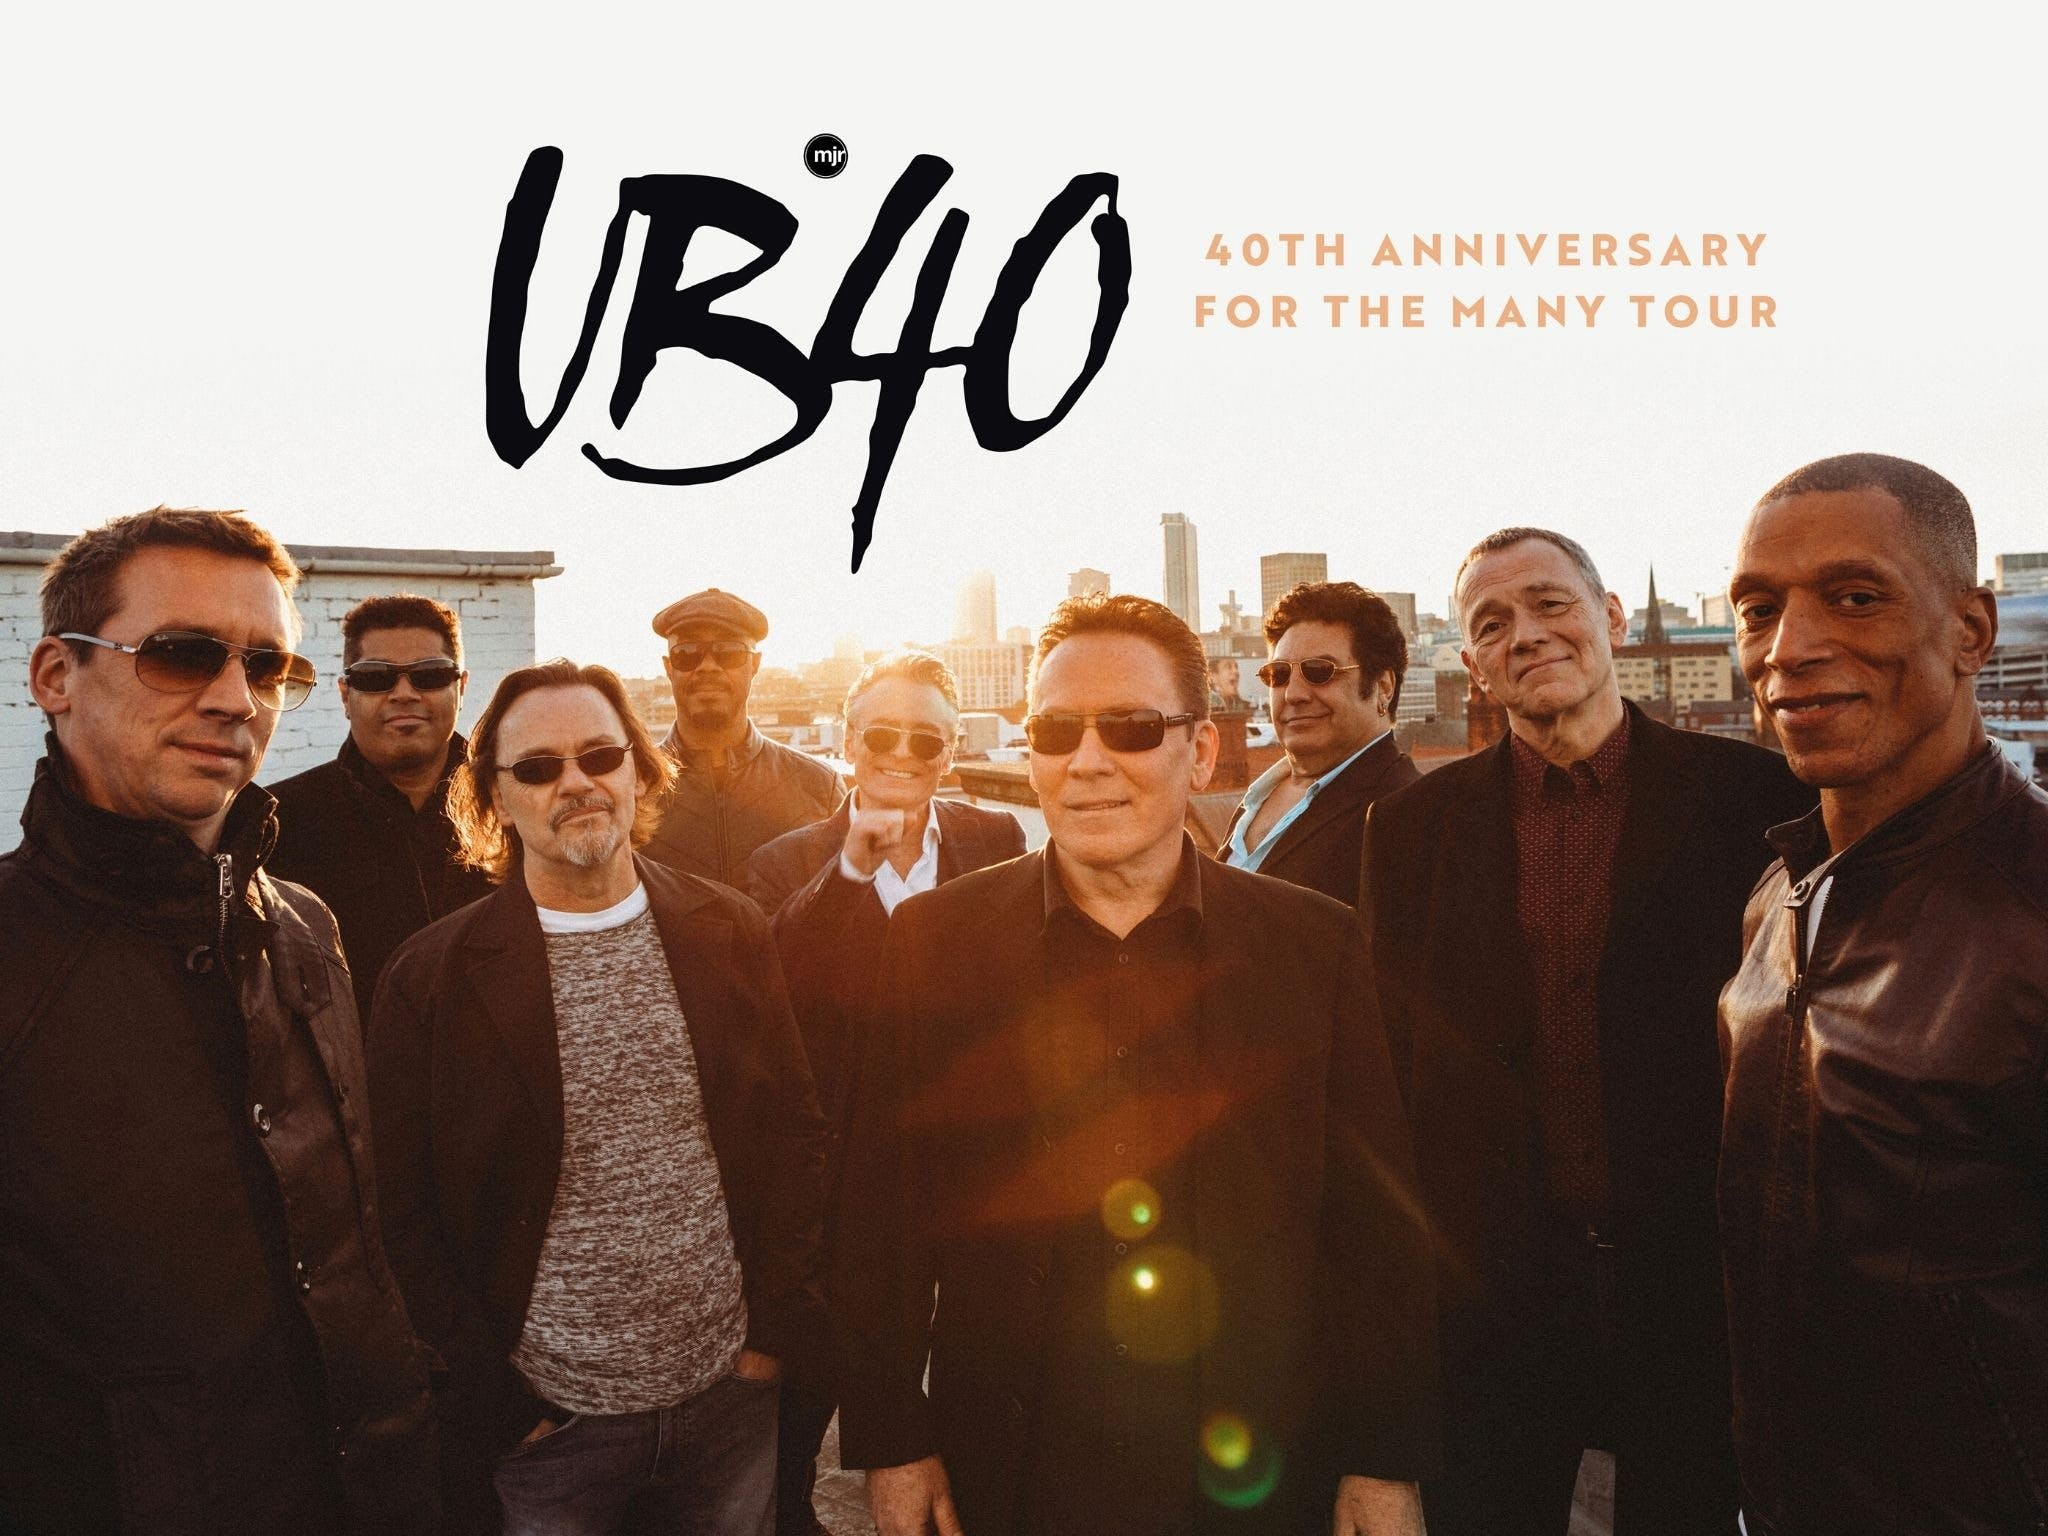 UB40 40th Anniversary Tour - ACT Tourism